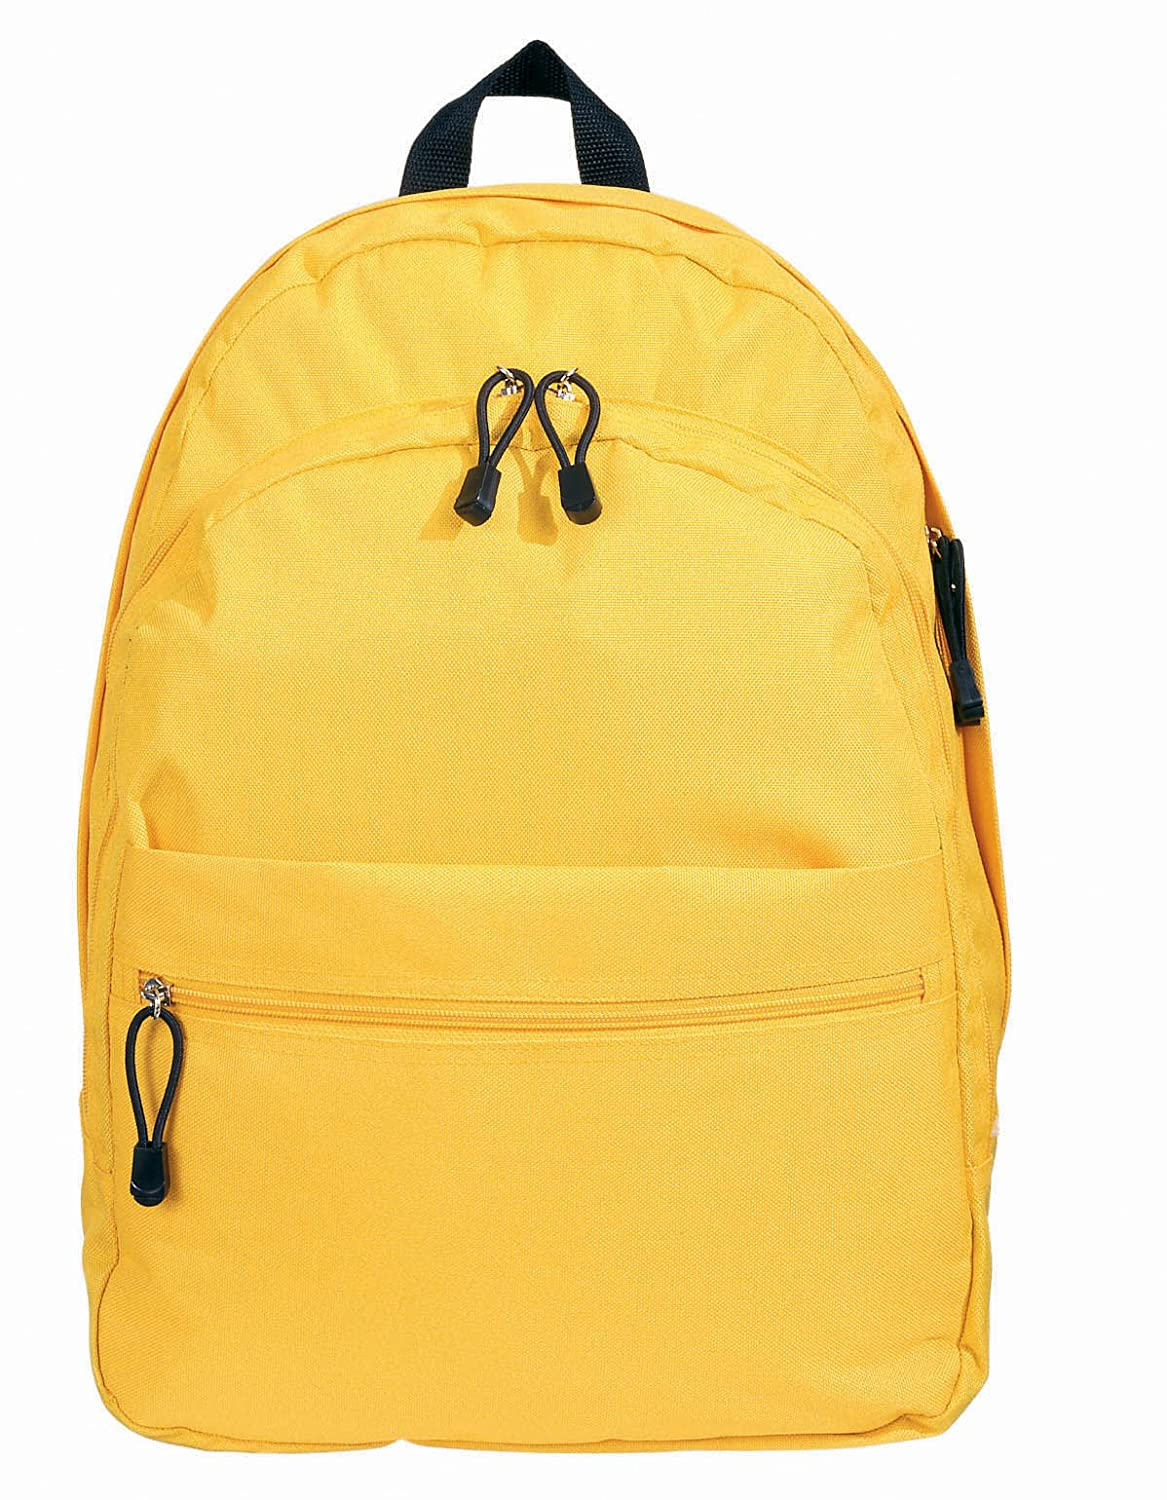 CENTRIX TREND RUCKSACK BACKPACK - 11 GREAT COLOURS 44d9629114deb